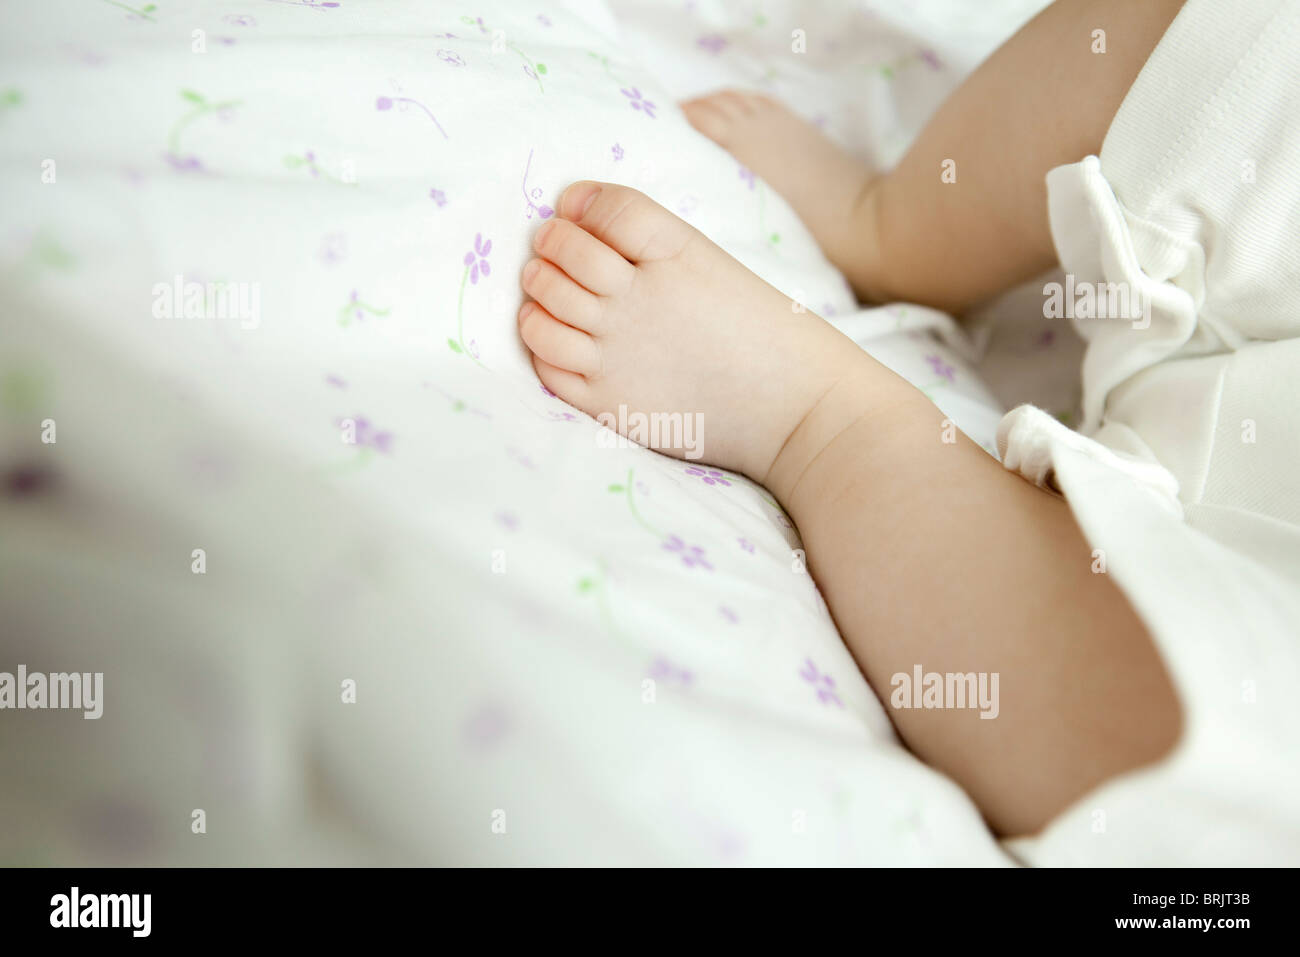 Infant's foot - Stock Image